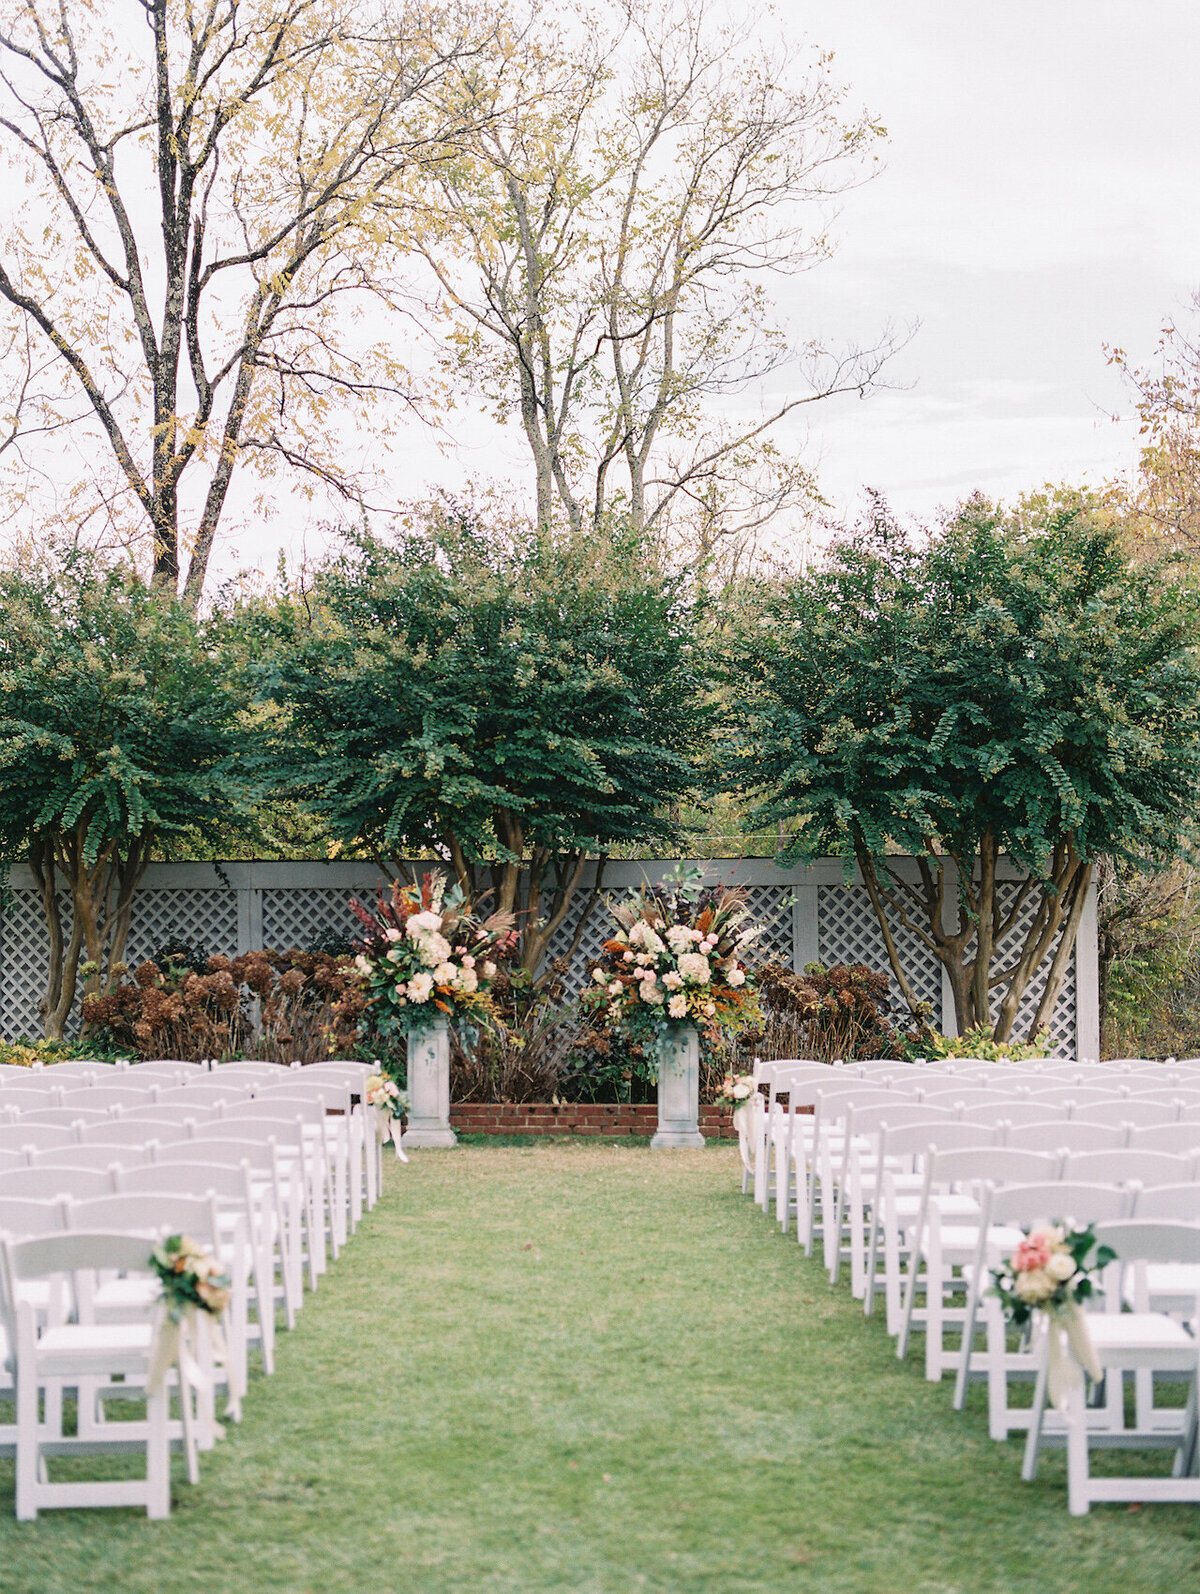 Outdoor Wedding Ceremony Washington DC Wedding Photographer Robert Aveau for © Bonnie Sen Photography